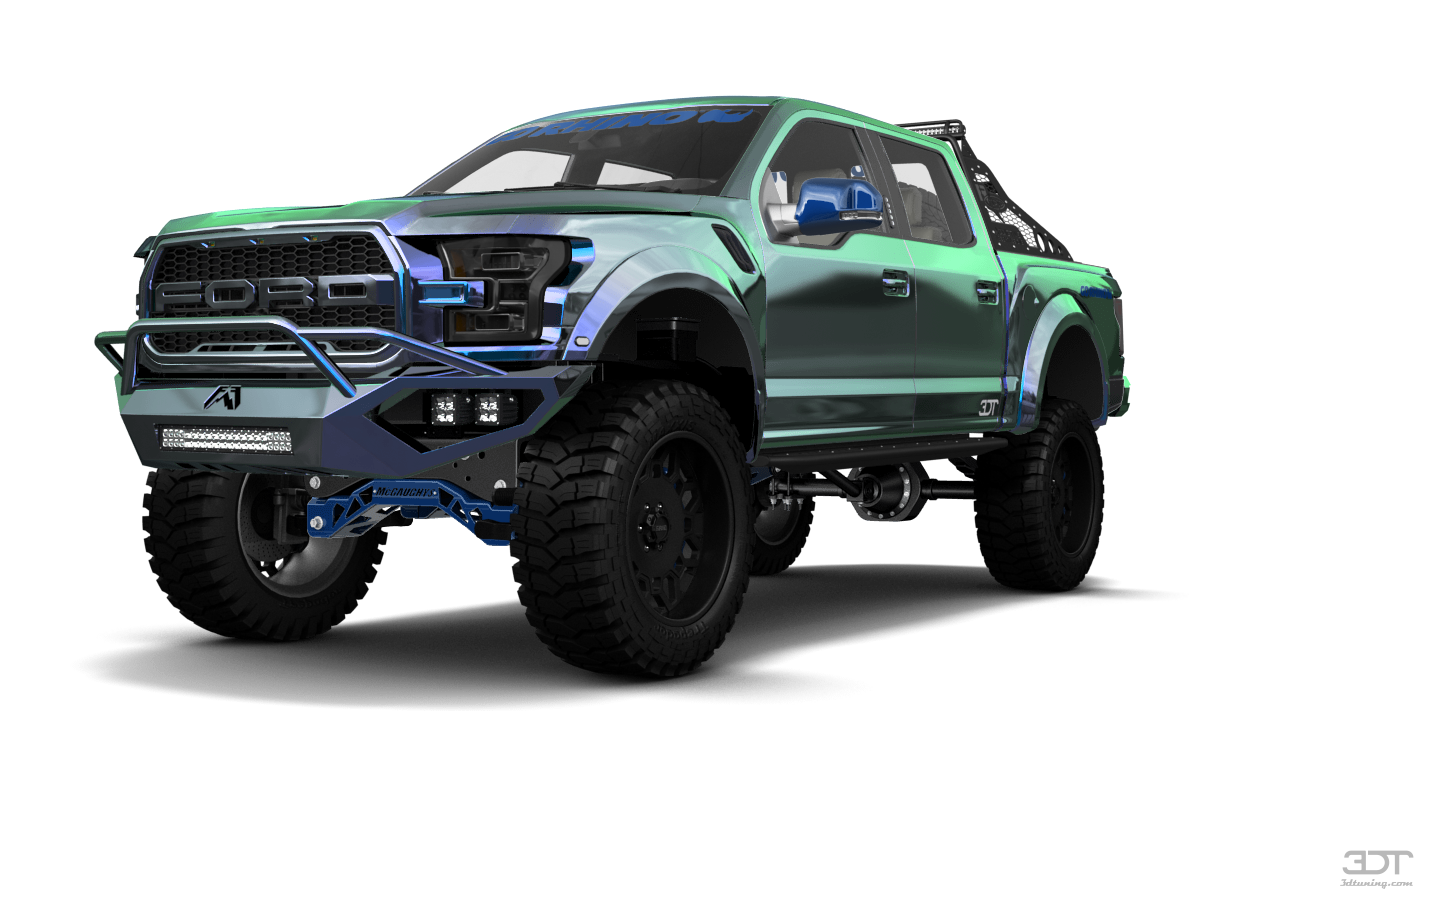 Ford F-150 Raptor 4 Door pickup truck 2017 tuning